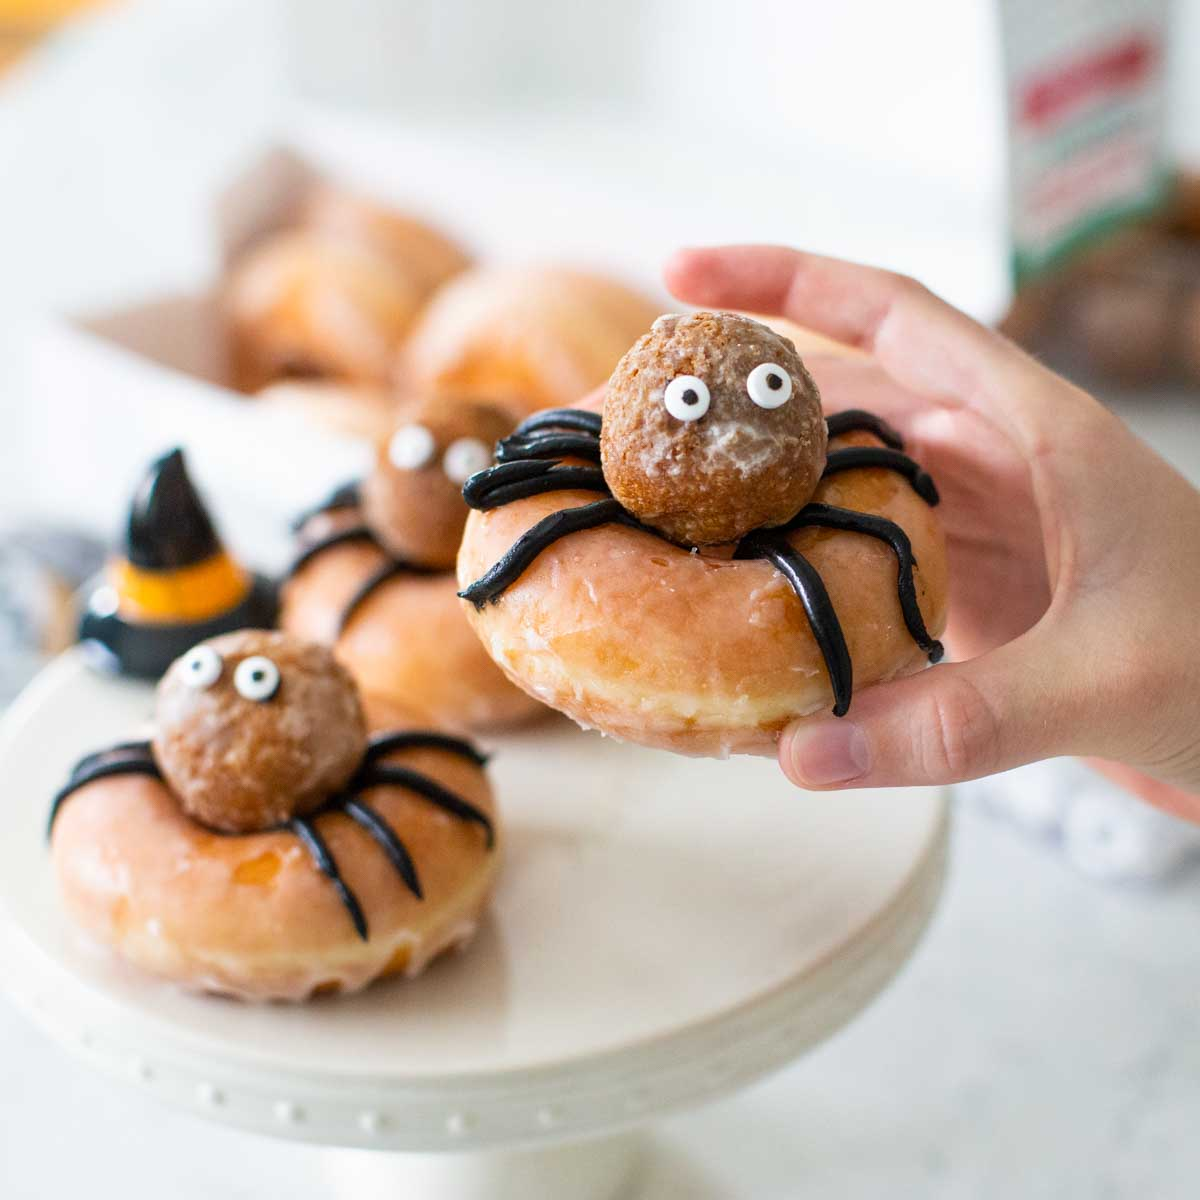 A glazed donut decorated to look like a spider with a donut hole on top, googly eyes, and black frosting legs is in the hand of a kid.